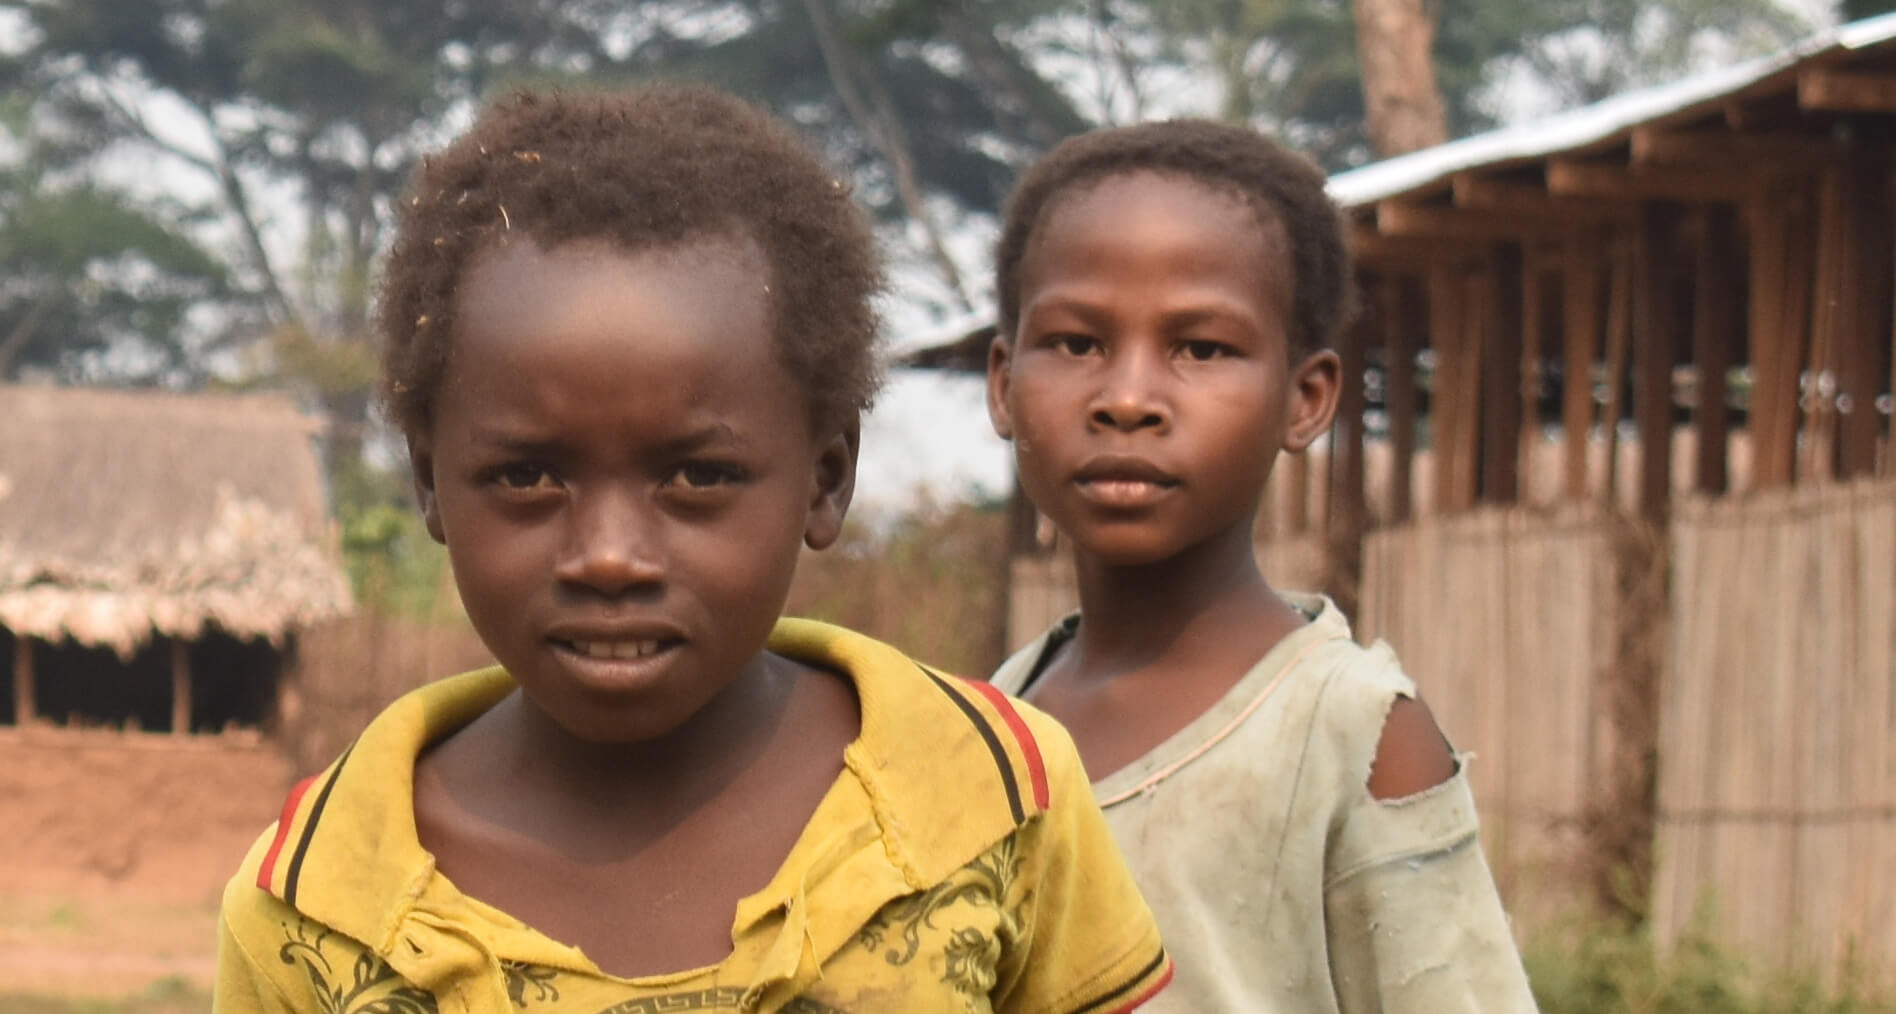 Your gift today will go to help those hardest hit by COVID-19 around the world.